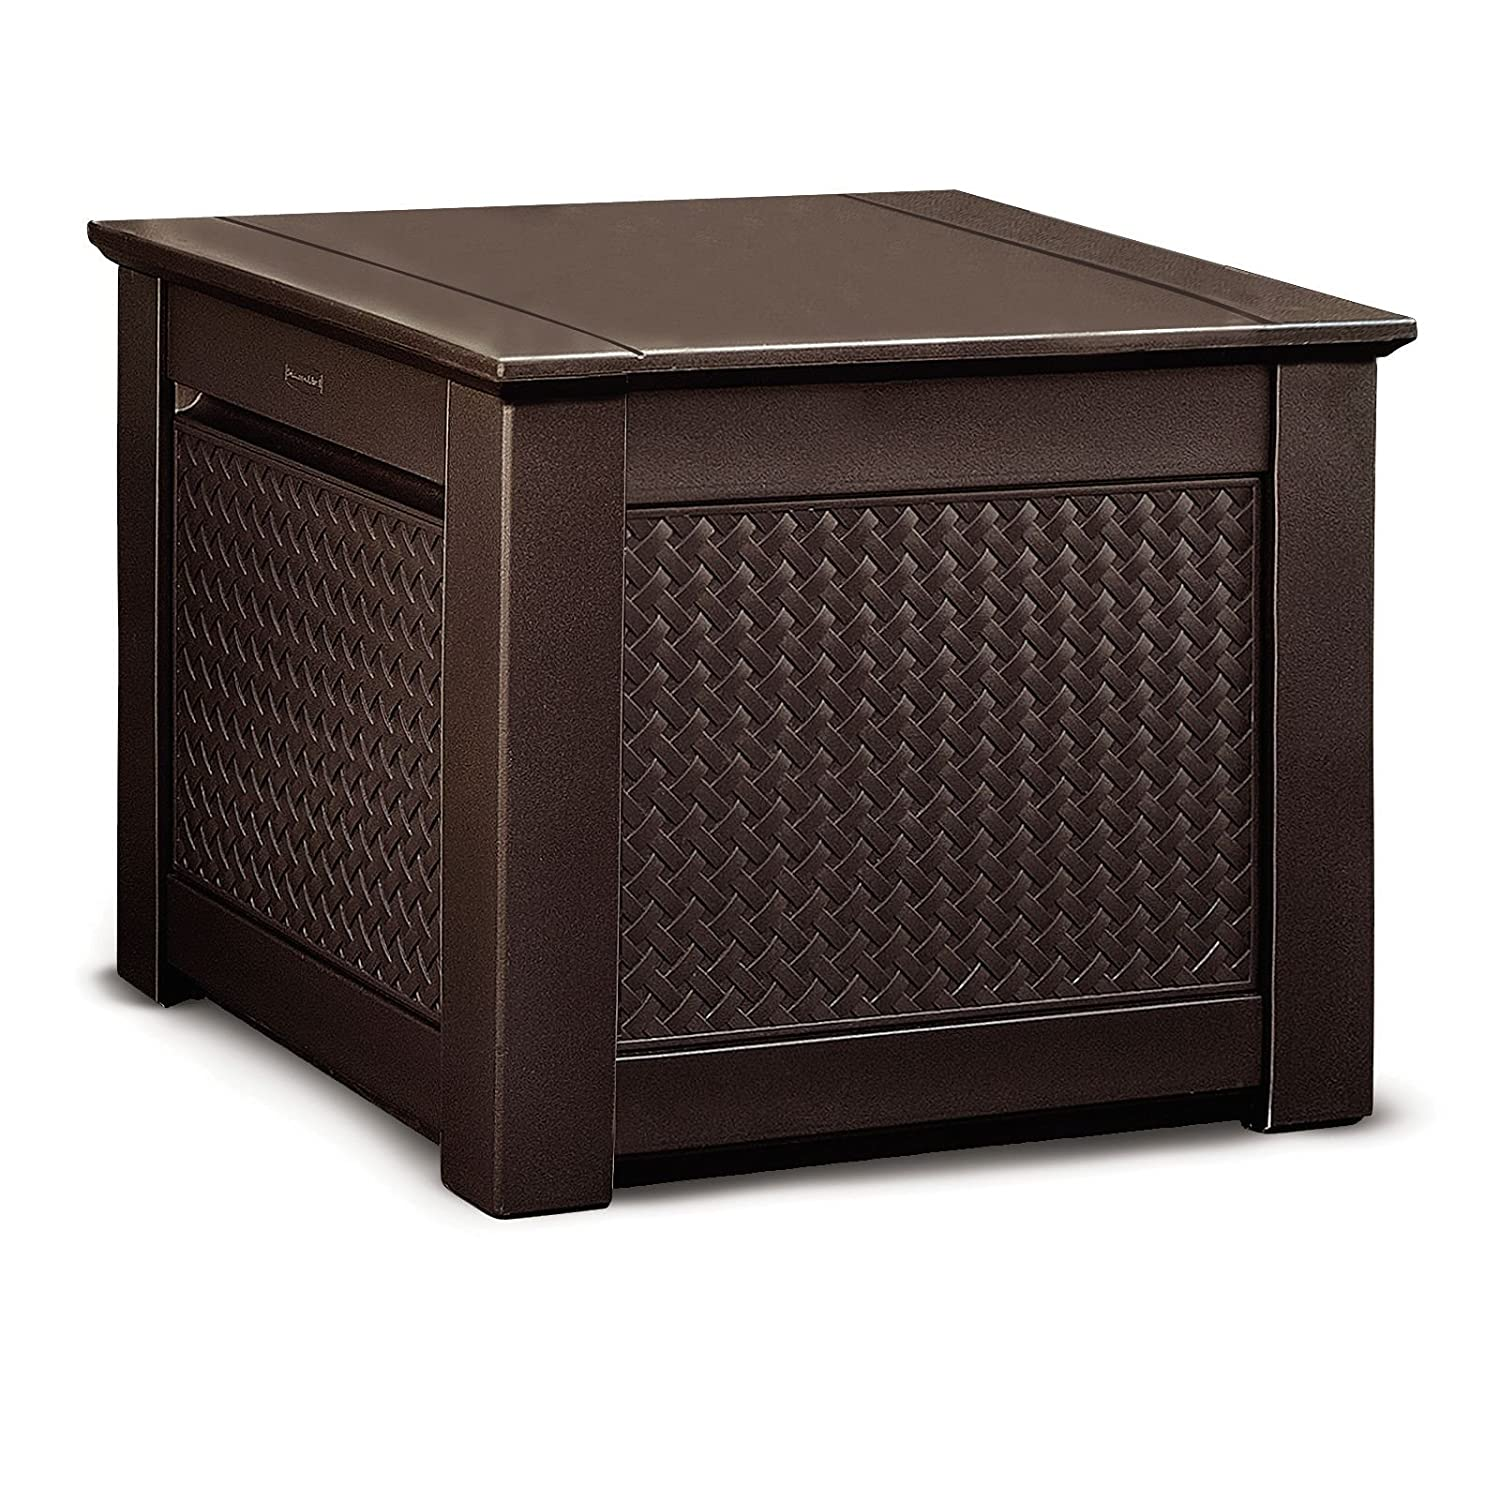 Amazon.com Rubbermaid Outdoor Storage Patio Series Cabinet (1889849) Home u0026 Kitchen  sc 1 st  Amazon.com & Amazon.com: Rubbermaid Outdoor Storage Patio Series Cabinet (1889849 ...